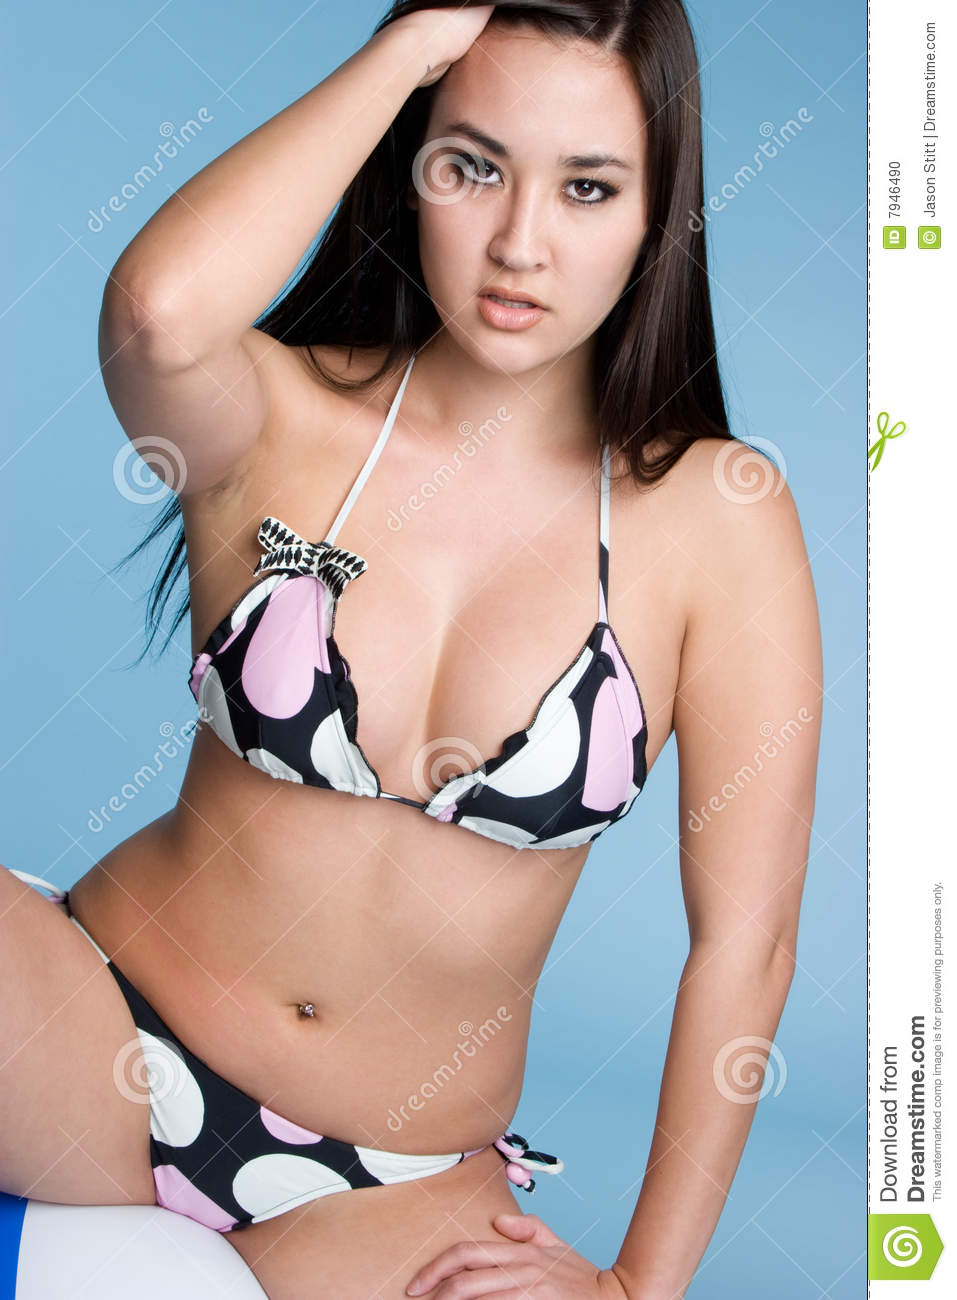 Photos asians koreans swimsuits